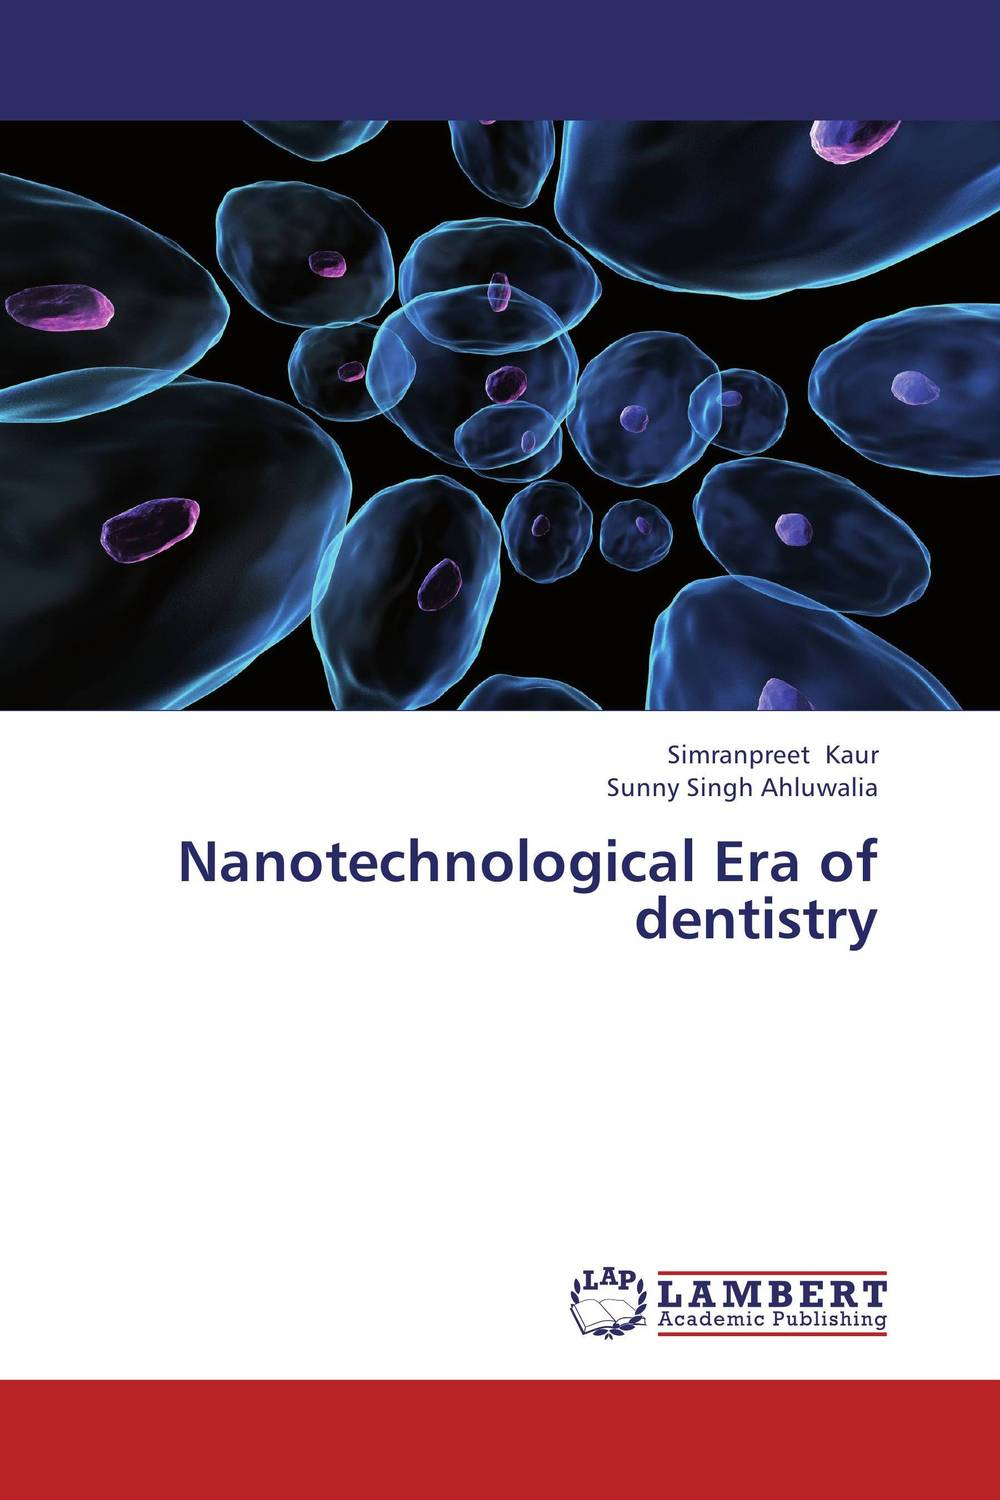 Nanotechnological Era of dentistry esthetics in implant dentistry